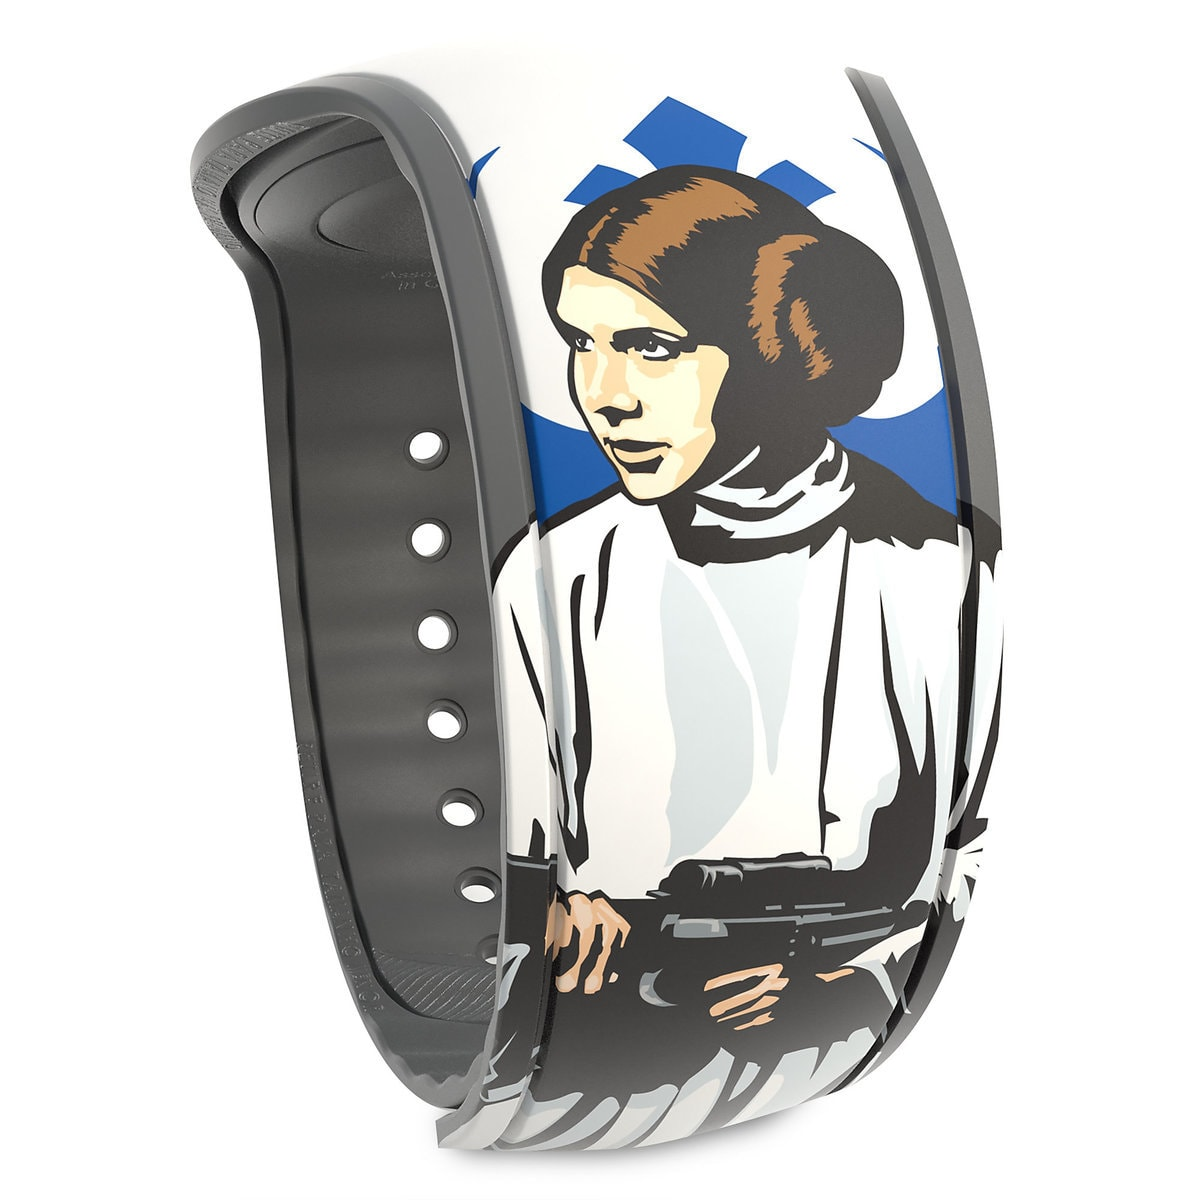 Princess Leia MagicBand 2 - Star Wars - Limited Release